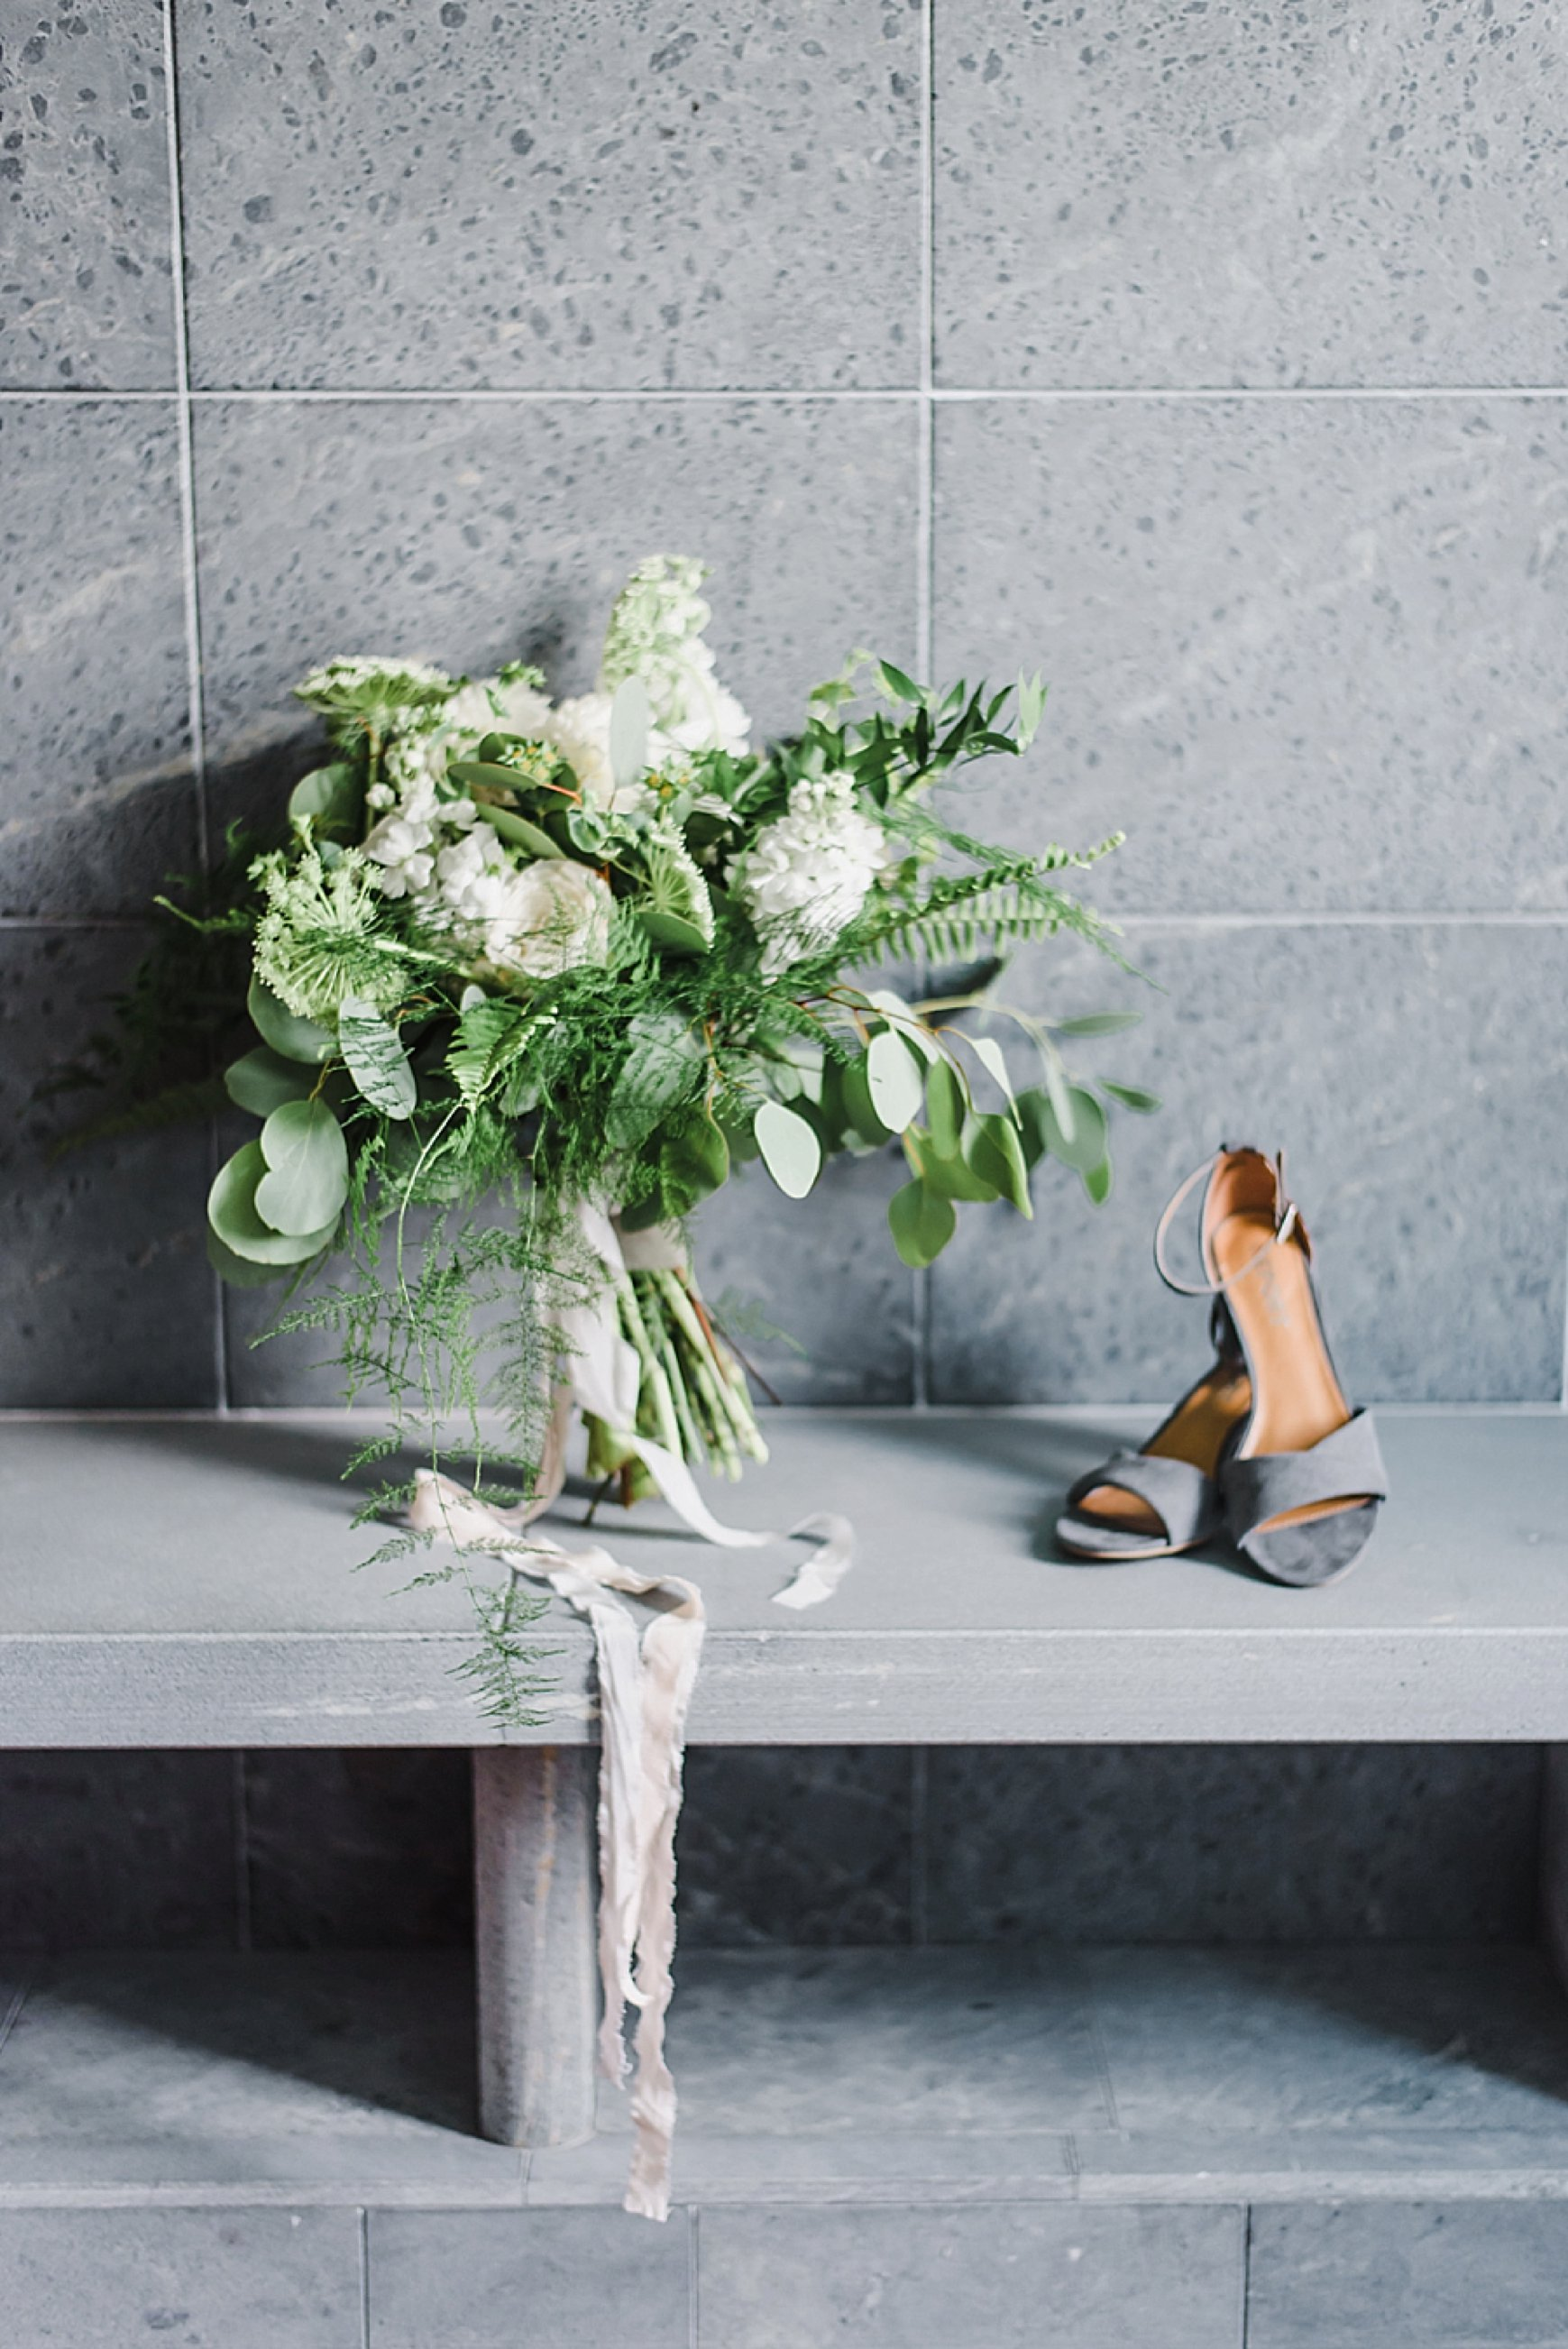 The all white and green garden-inspired bouquet by Jade Gardens blew us all away!